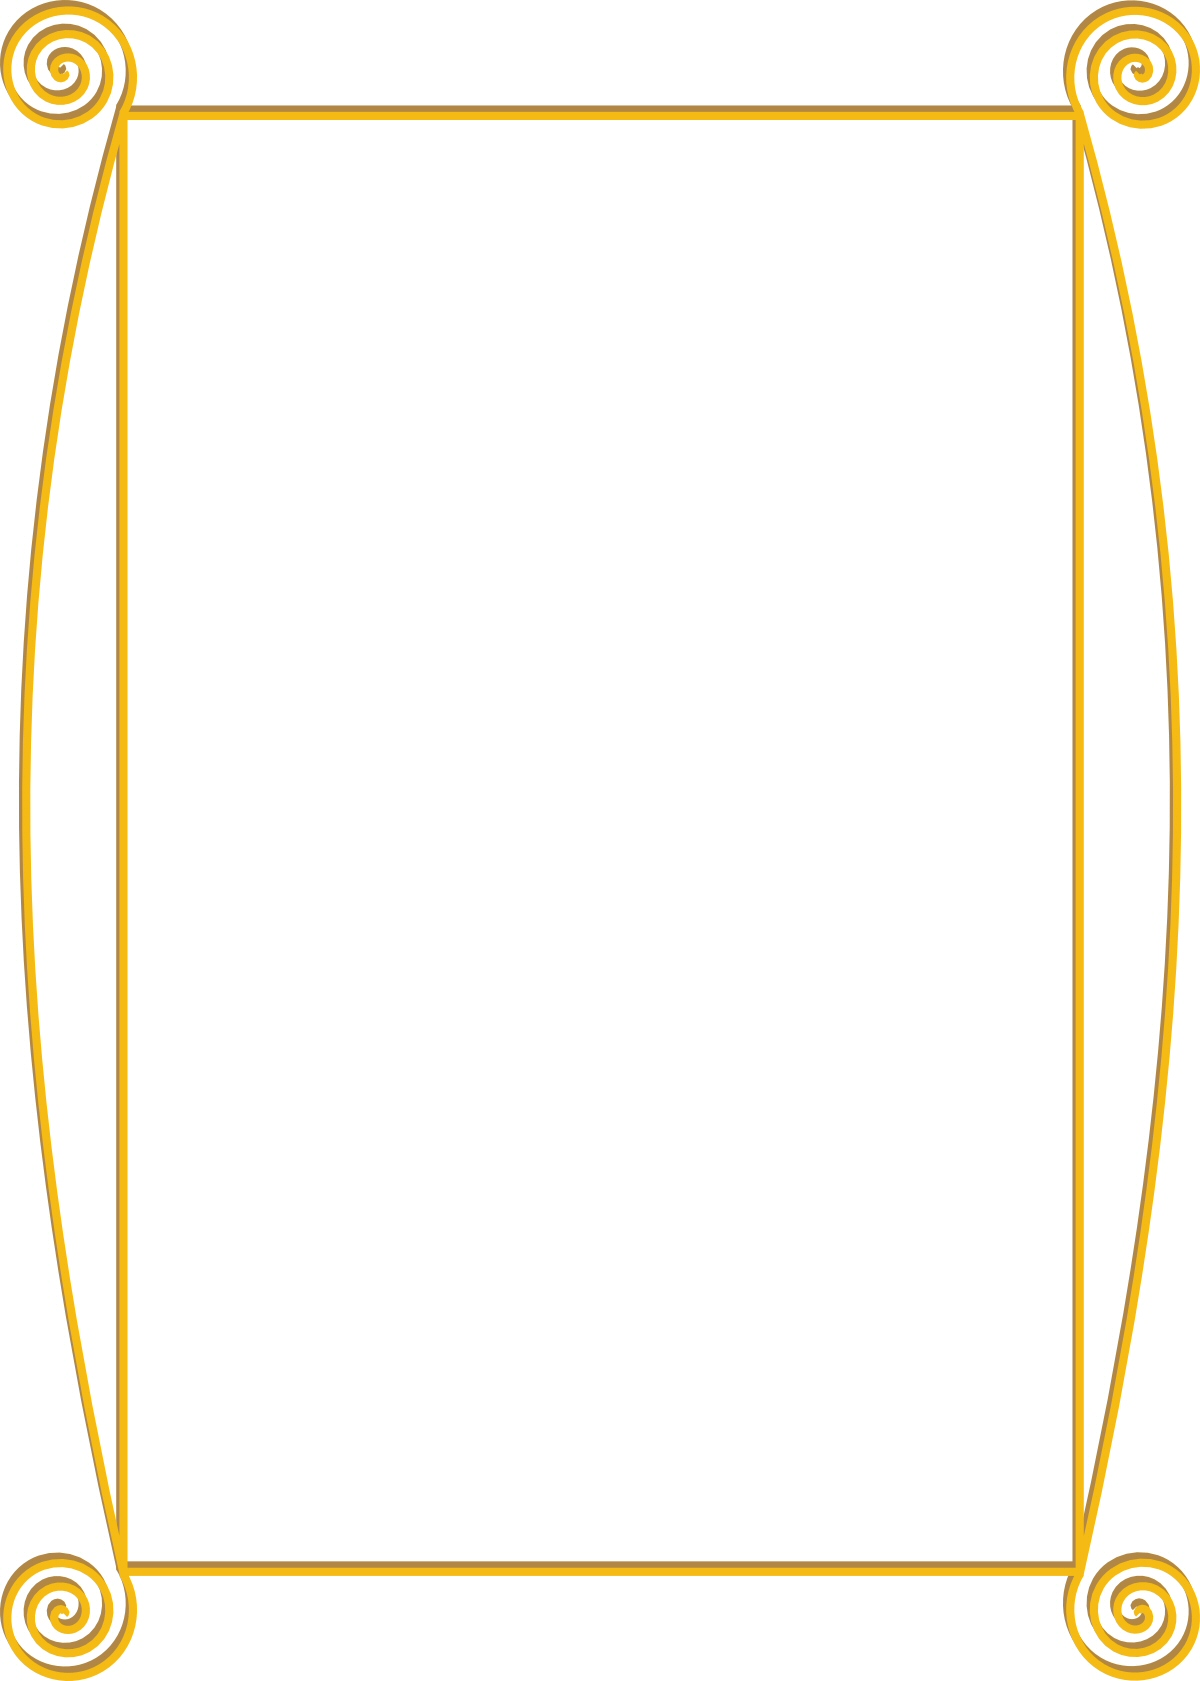 Fancy Gold Border Fancy Gold Border Clipart